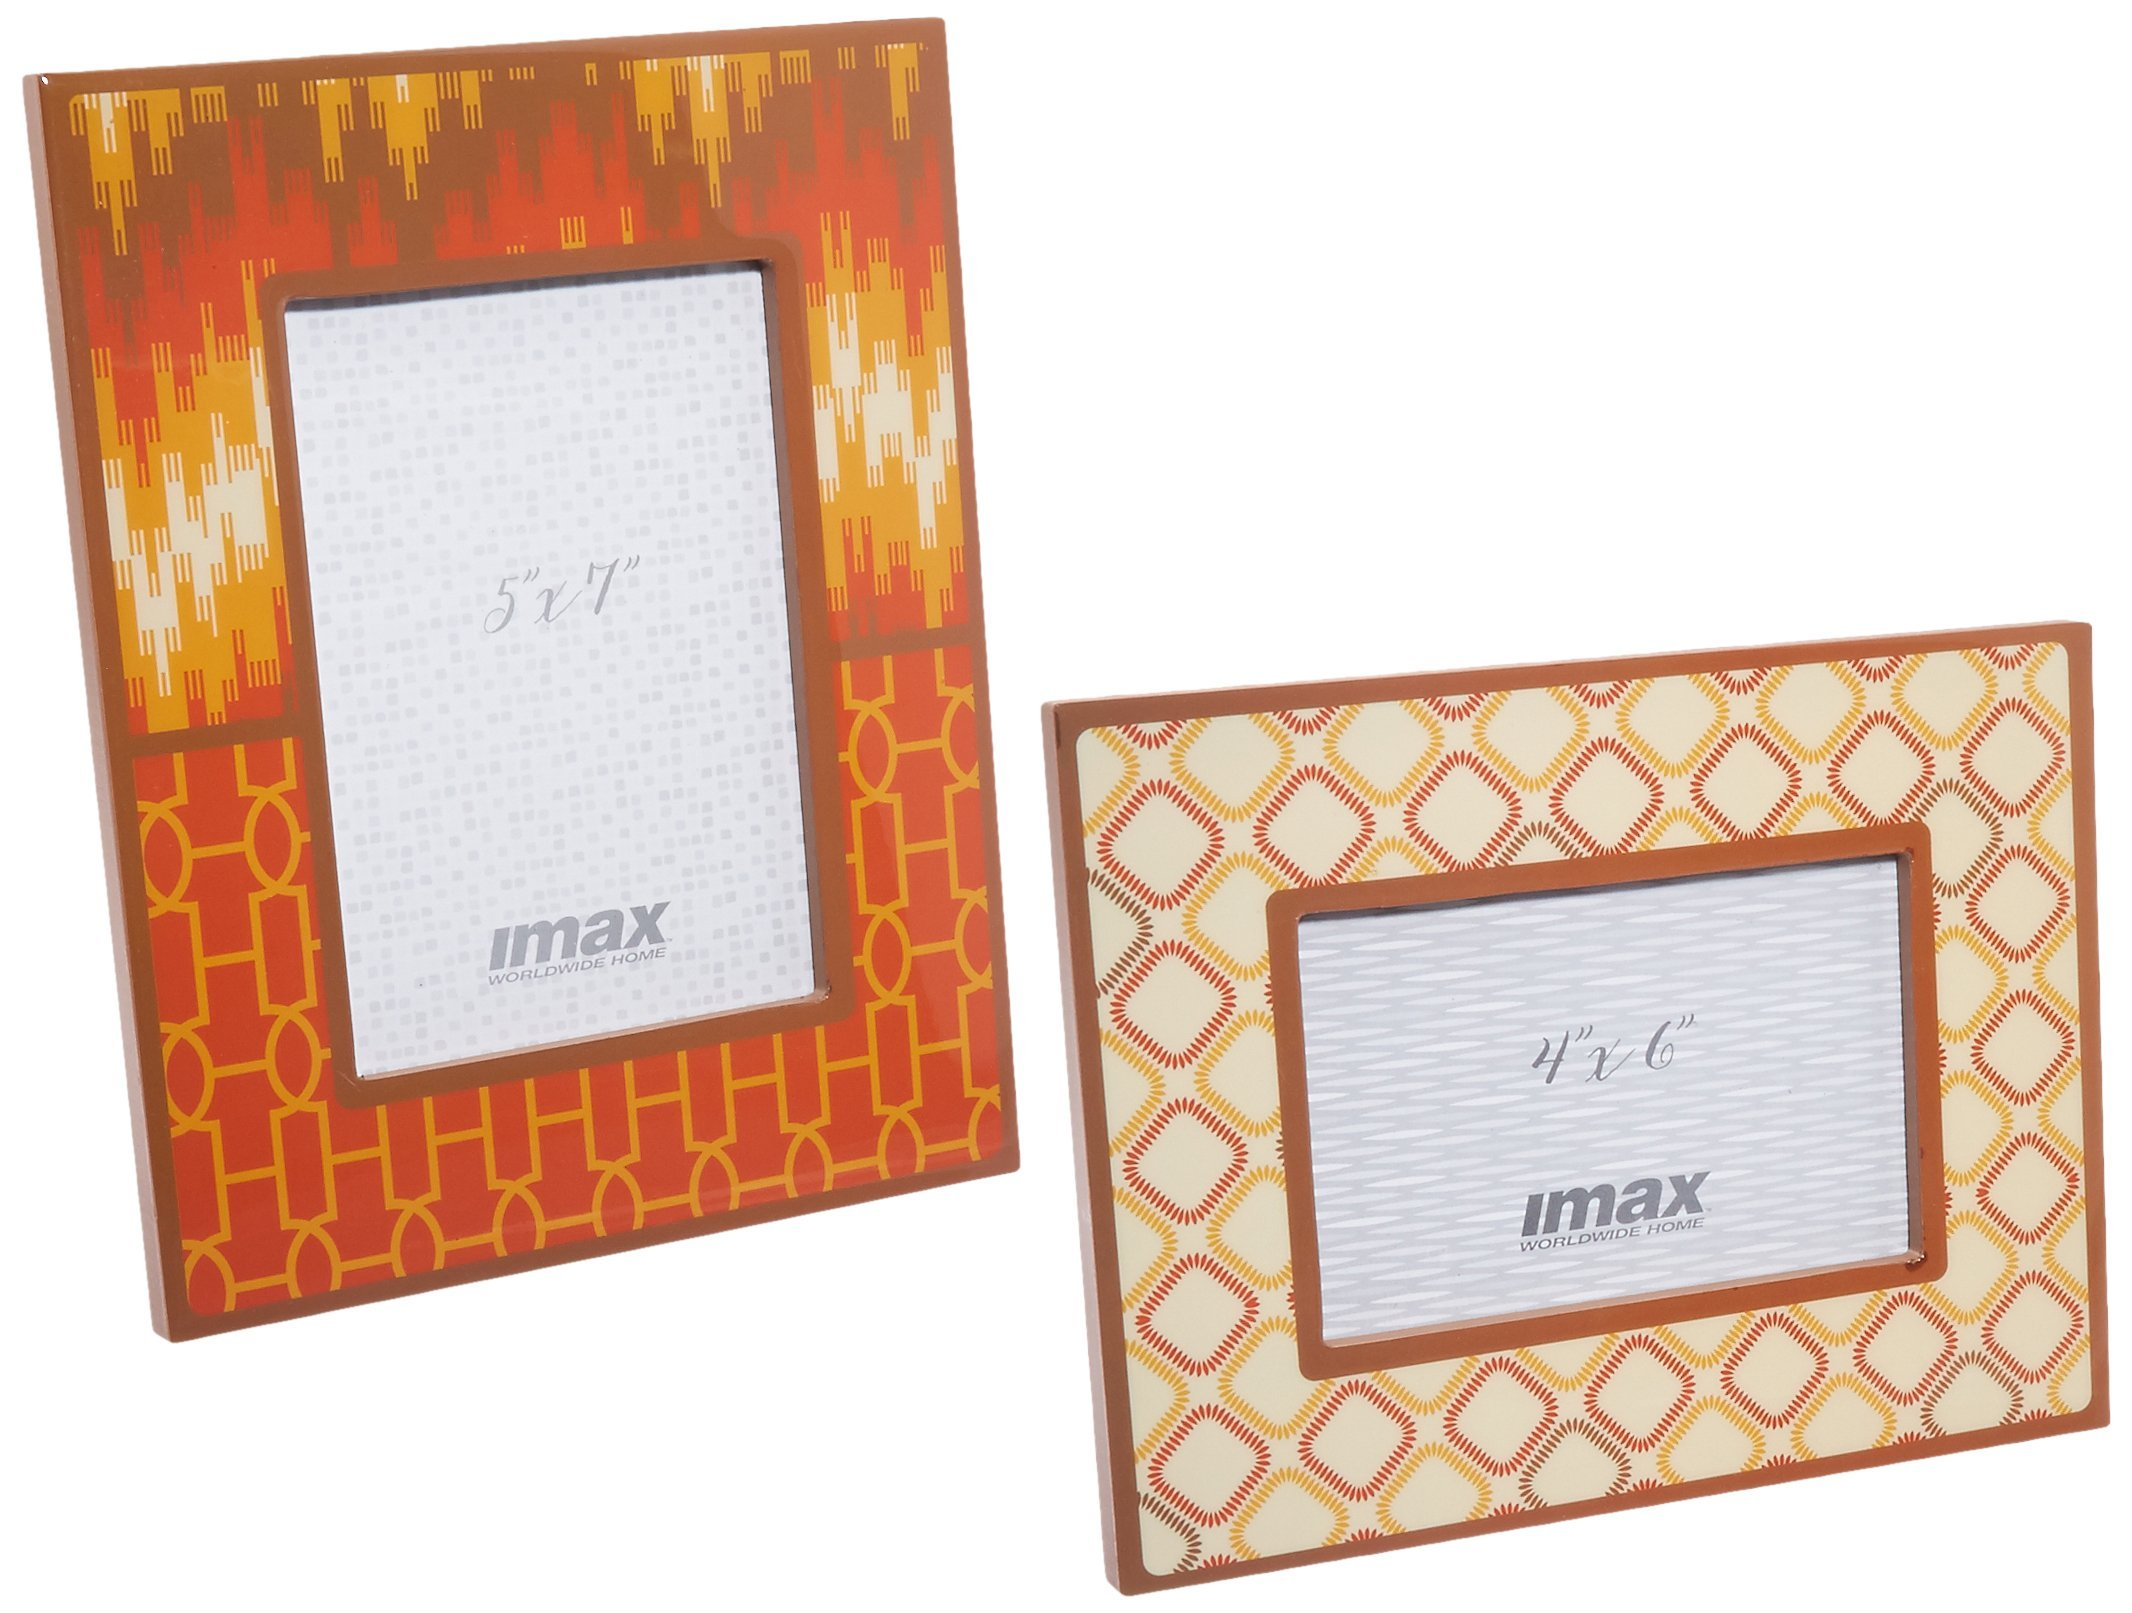 Imax 71121-2 Essentials Energetic Photo Frames (Set of 2), Multicolor